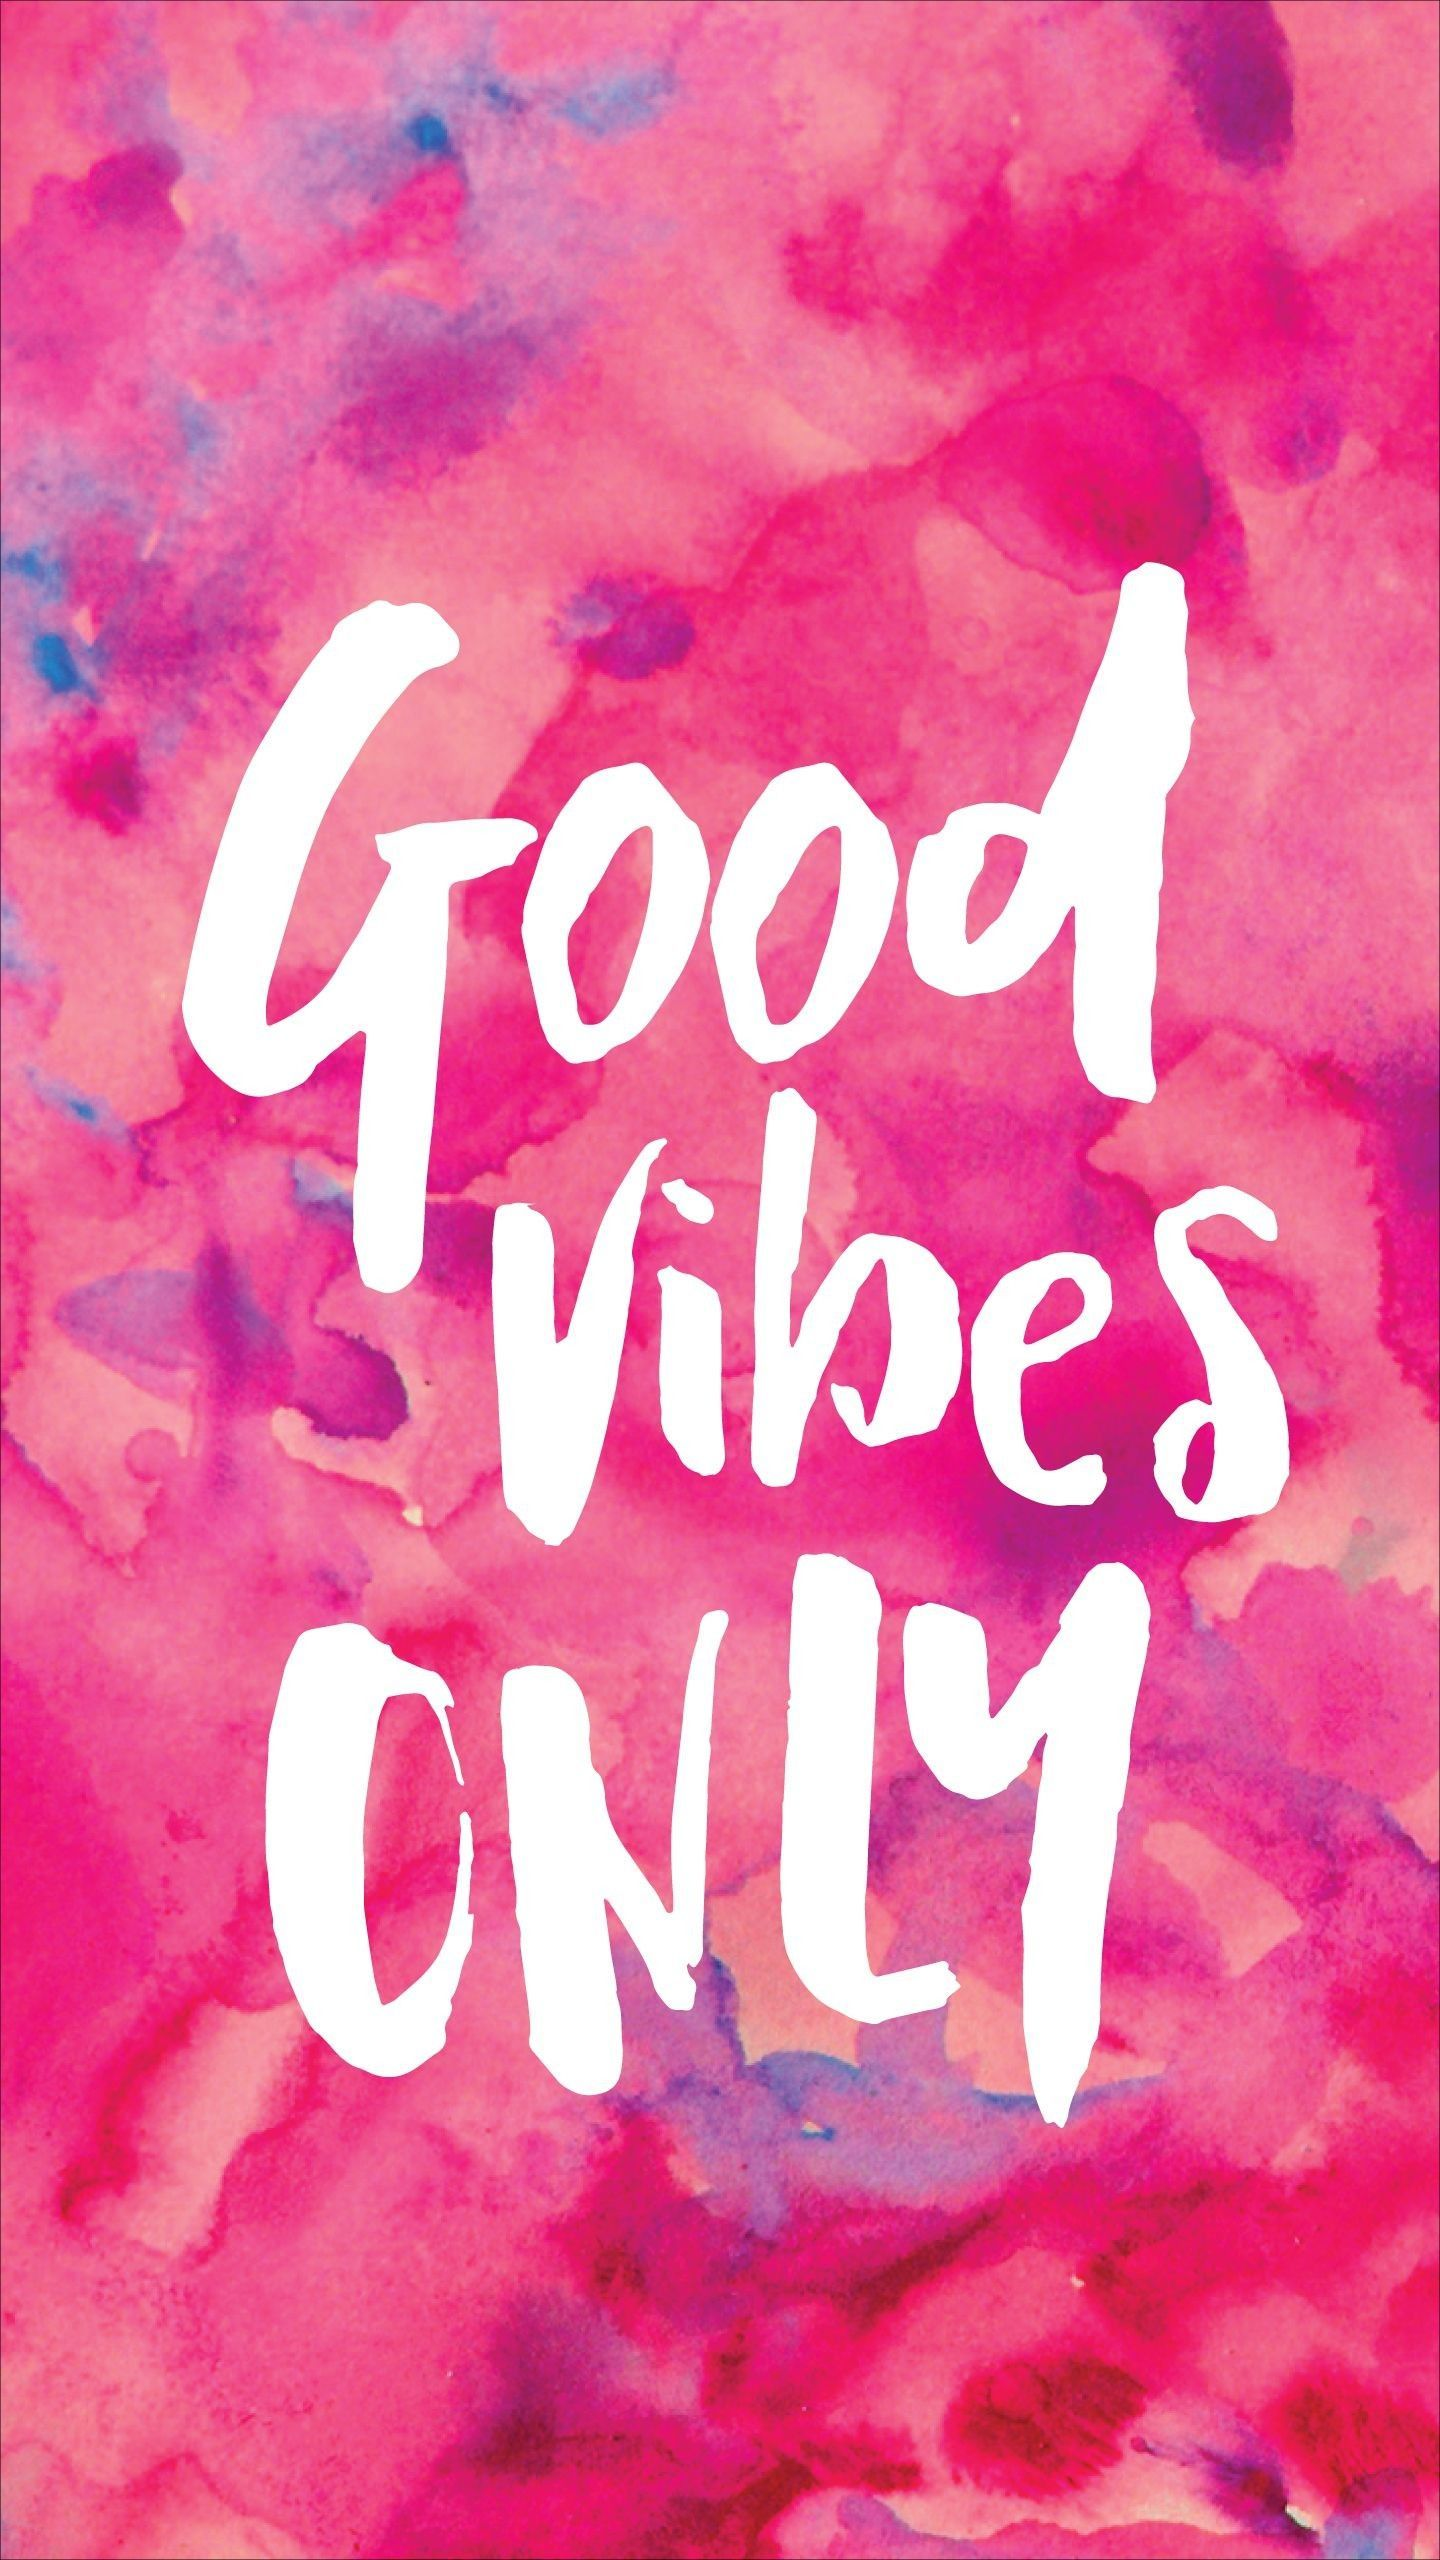 1440x2560 Good Vibes Only Wallpaper Group Pictures 42 Good Vibes Wallpaper Good Vibes Only Positive Vibes Only